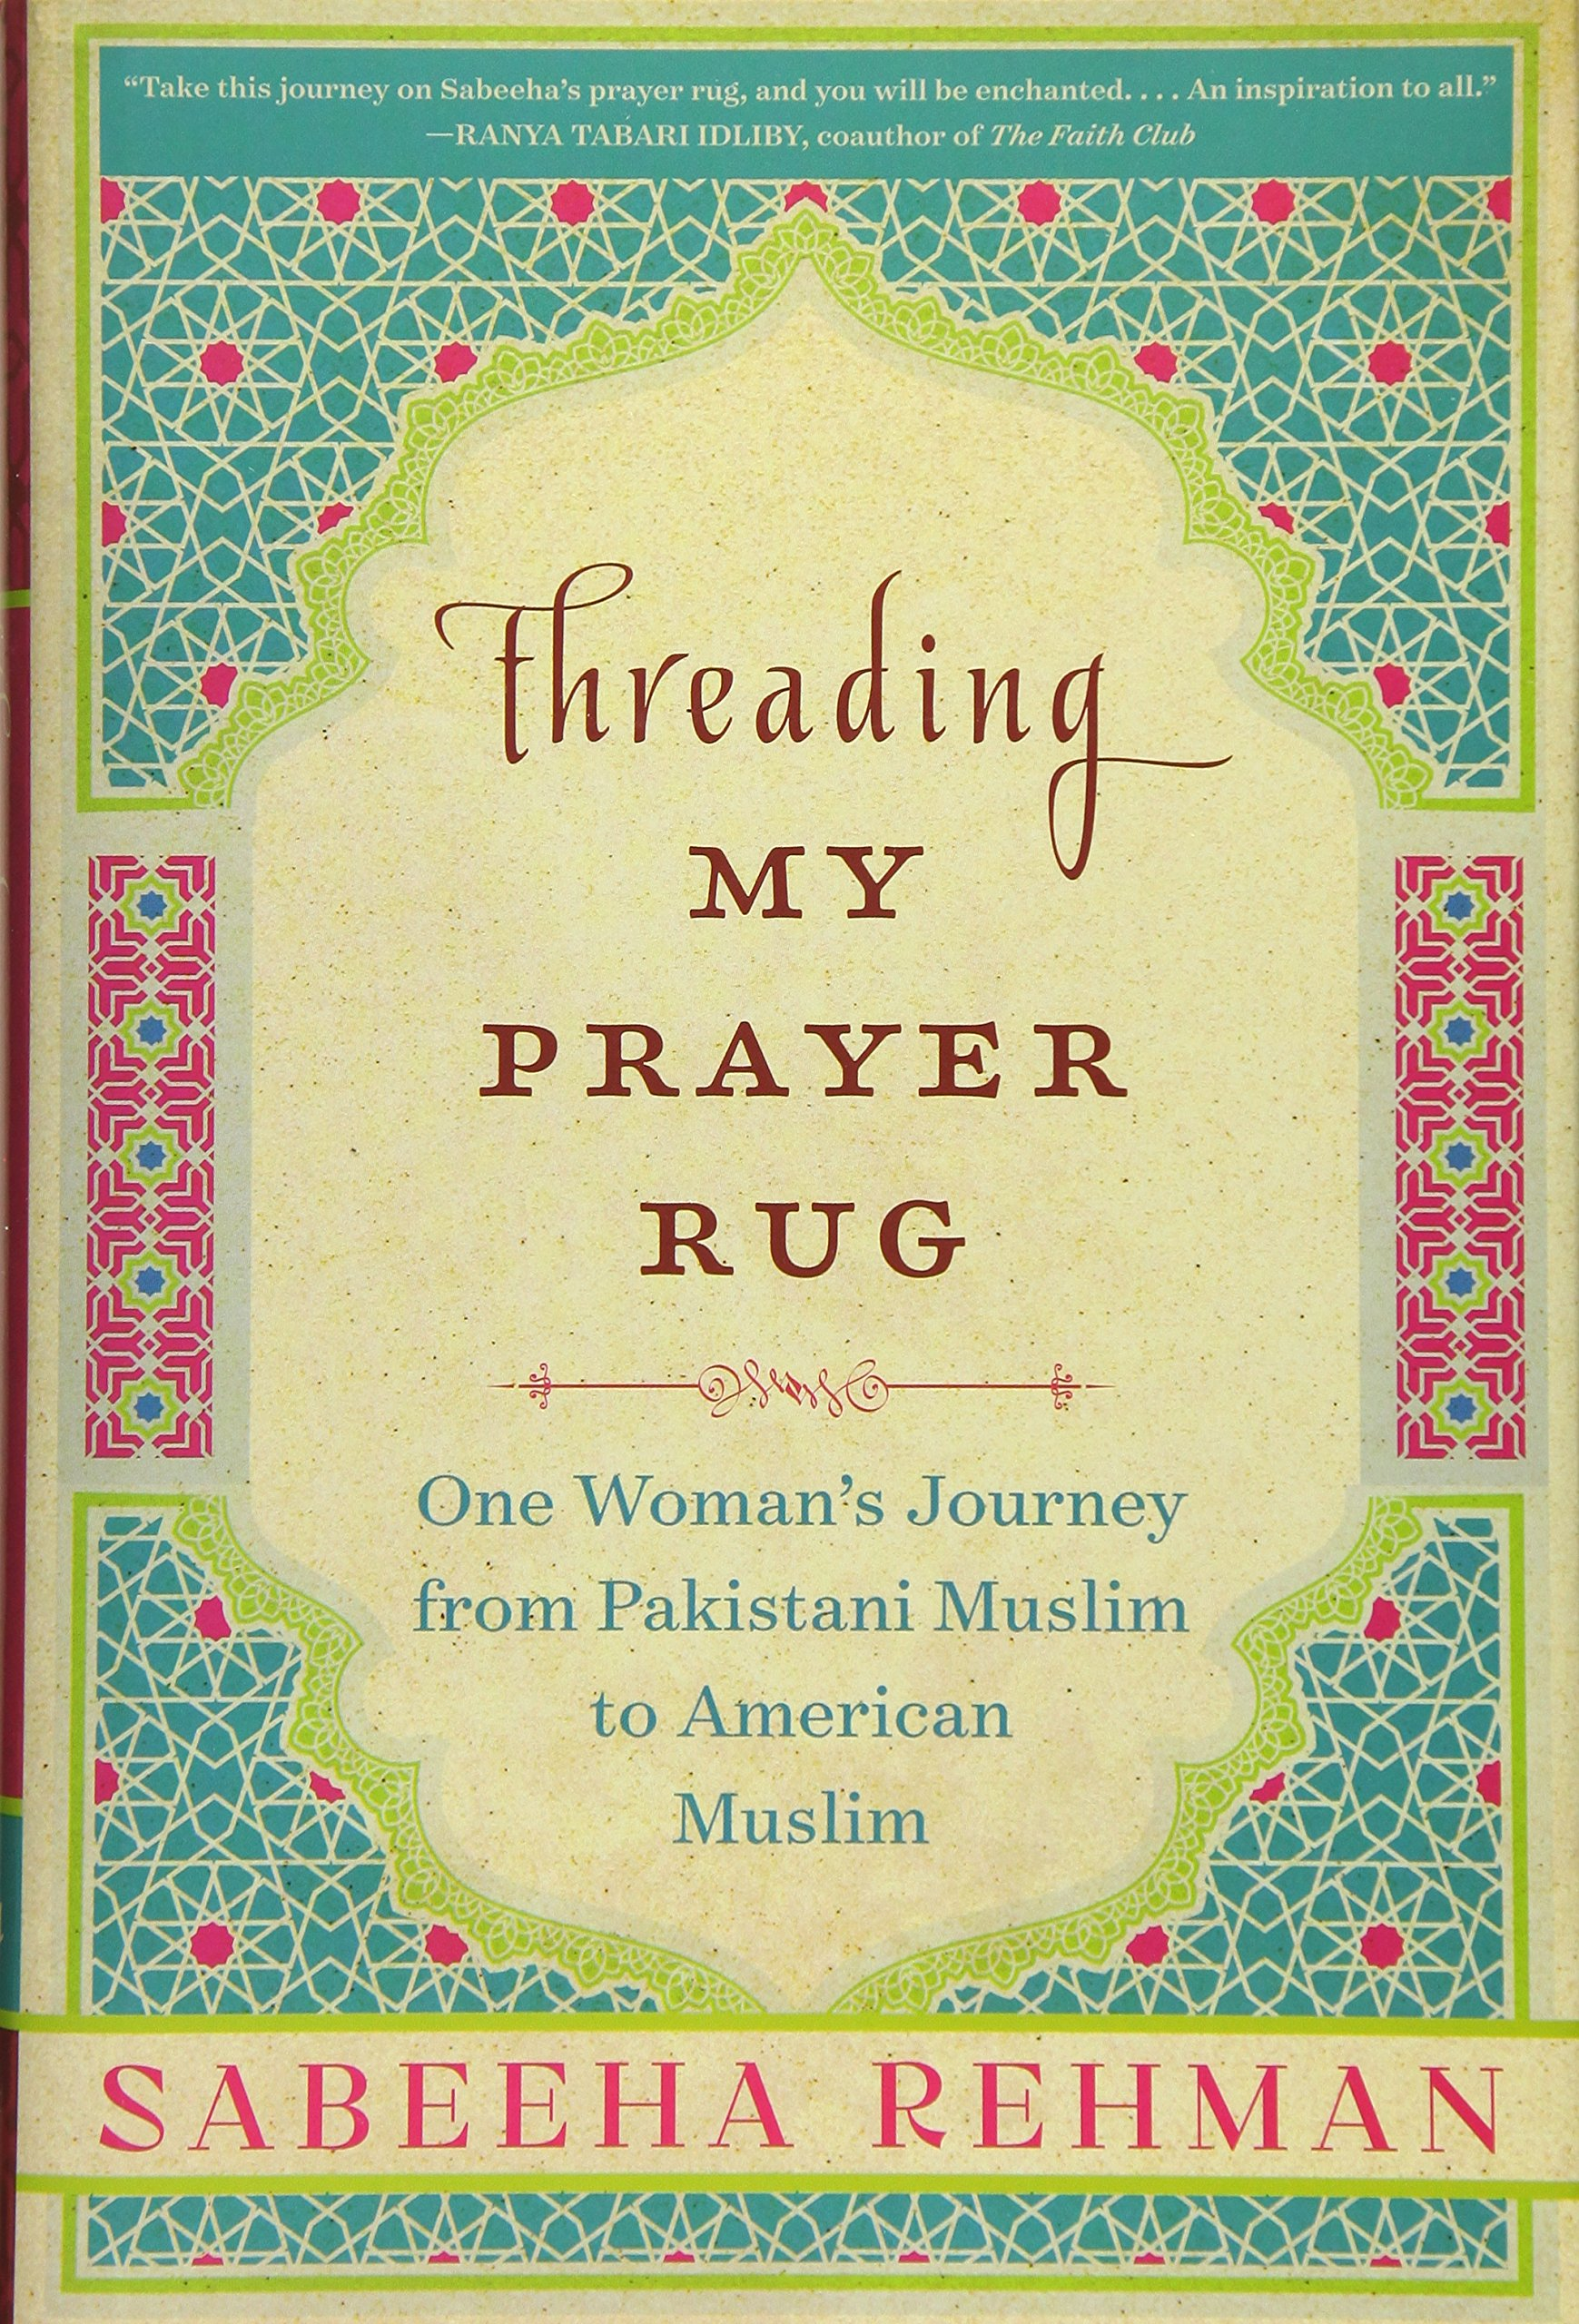 Threading My Prayer Rug: One Woman's Journey from Pakistani Muslim to American Muslim Hardcover – July 5, 2016 Sabeeha Rehman Arcade Publishing 1628726636 Cultural Heritage